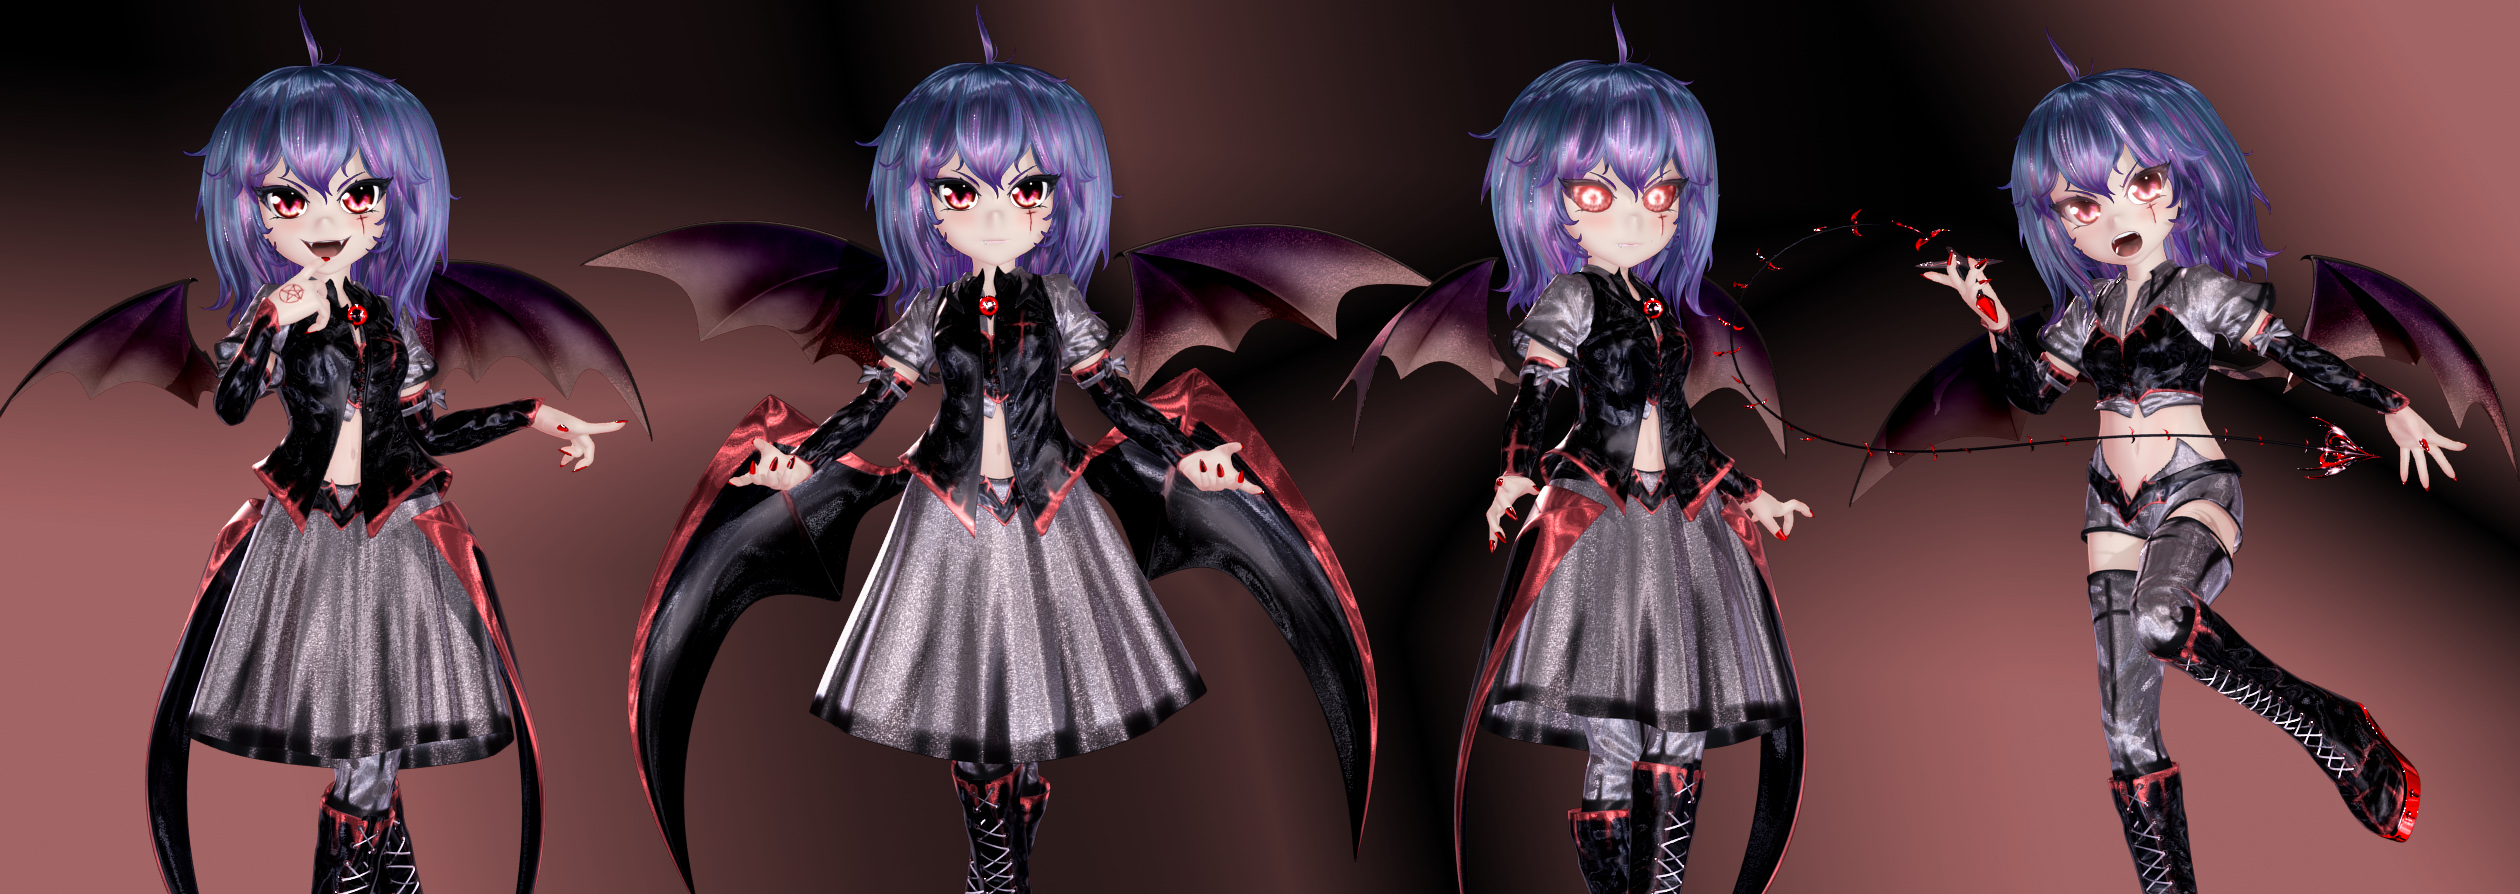 Phases of Remilia by Primantis